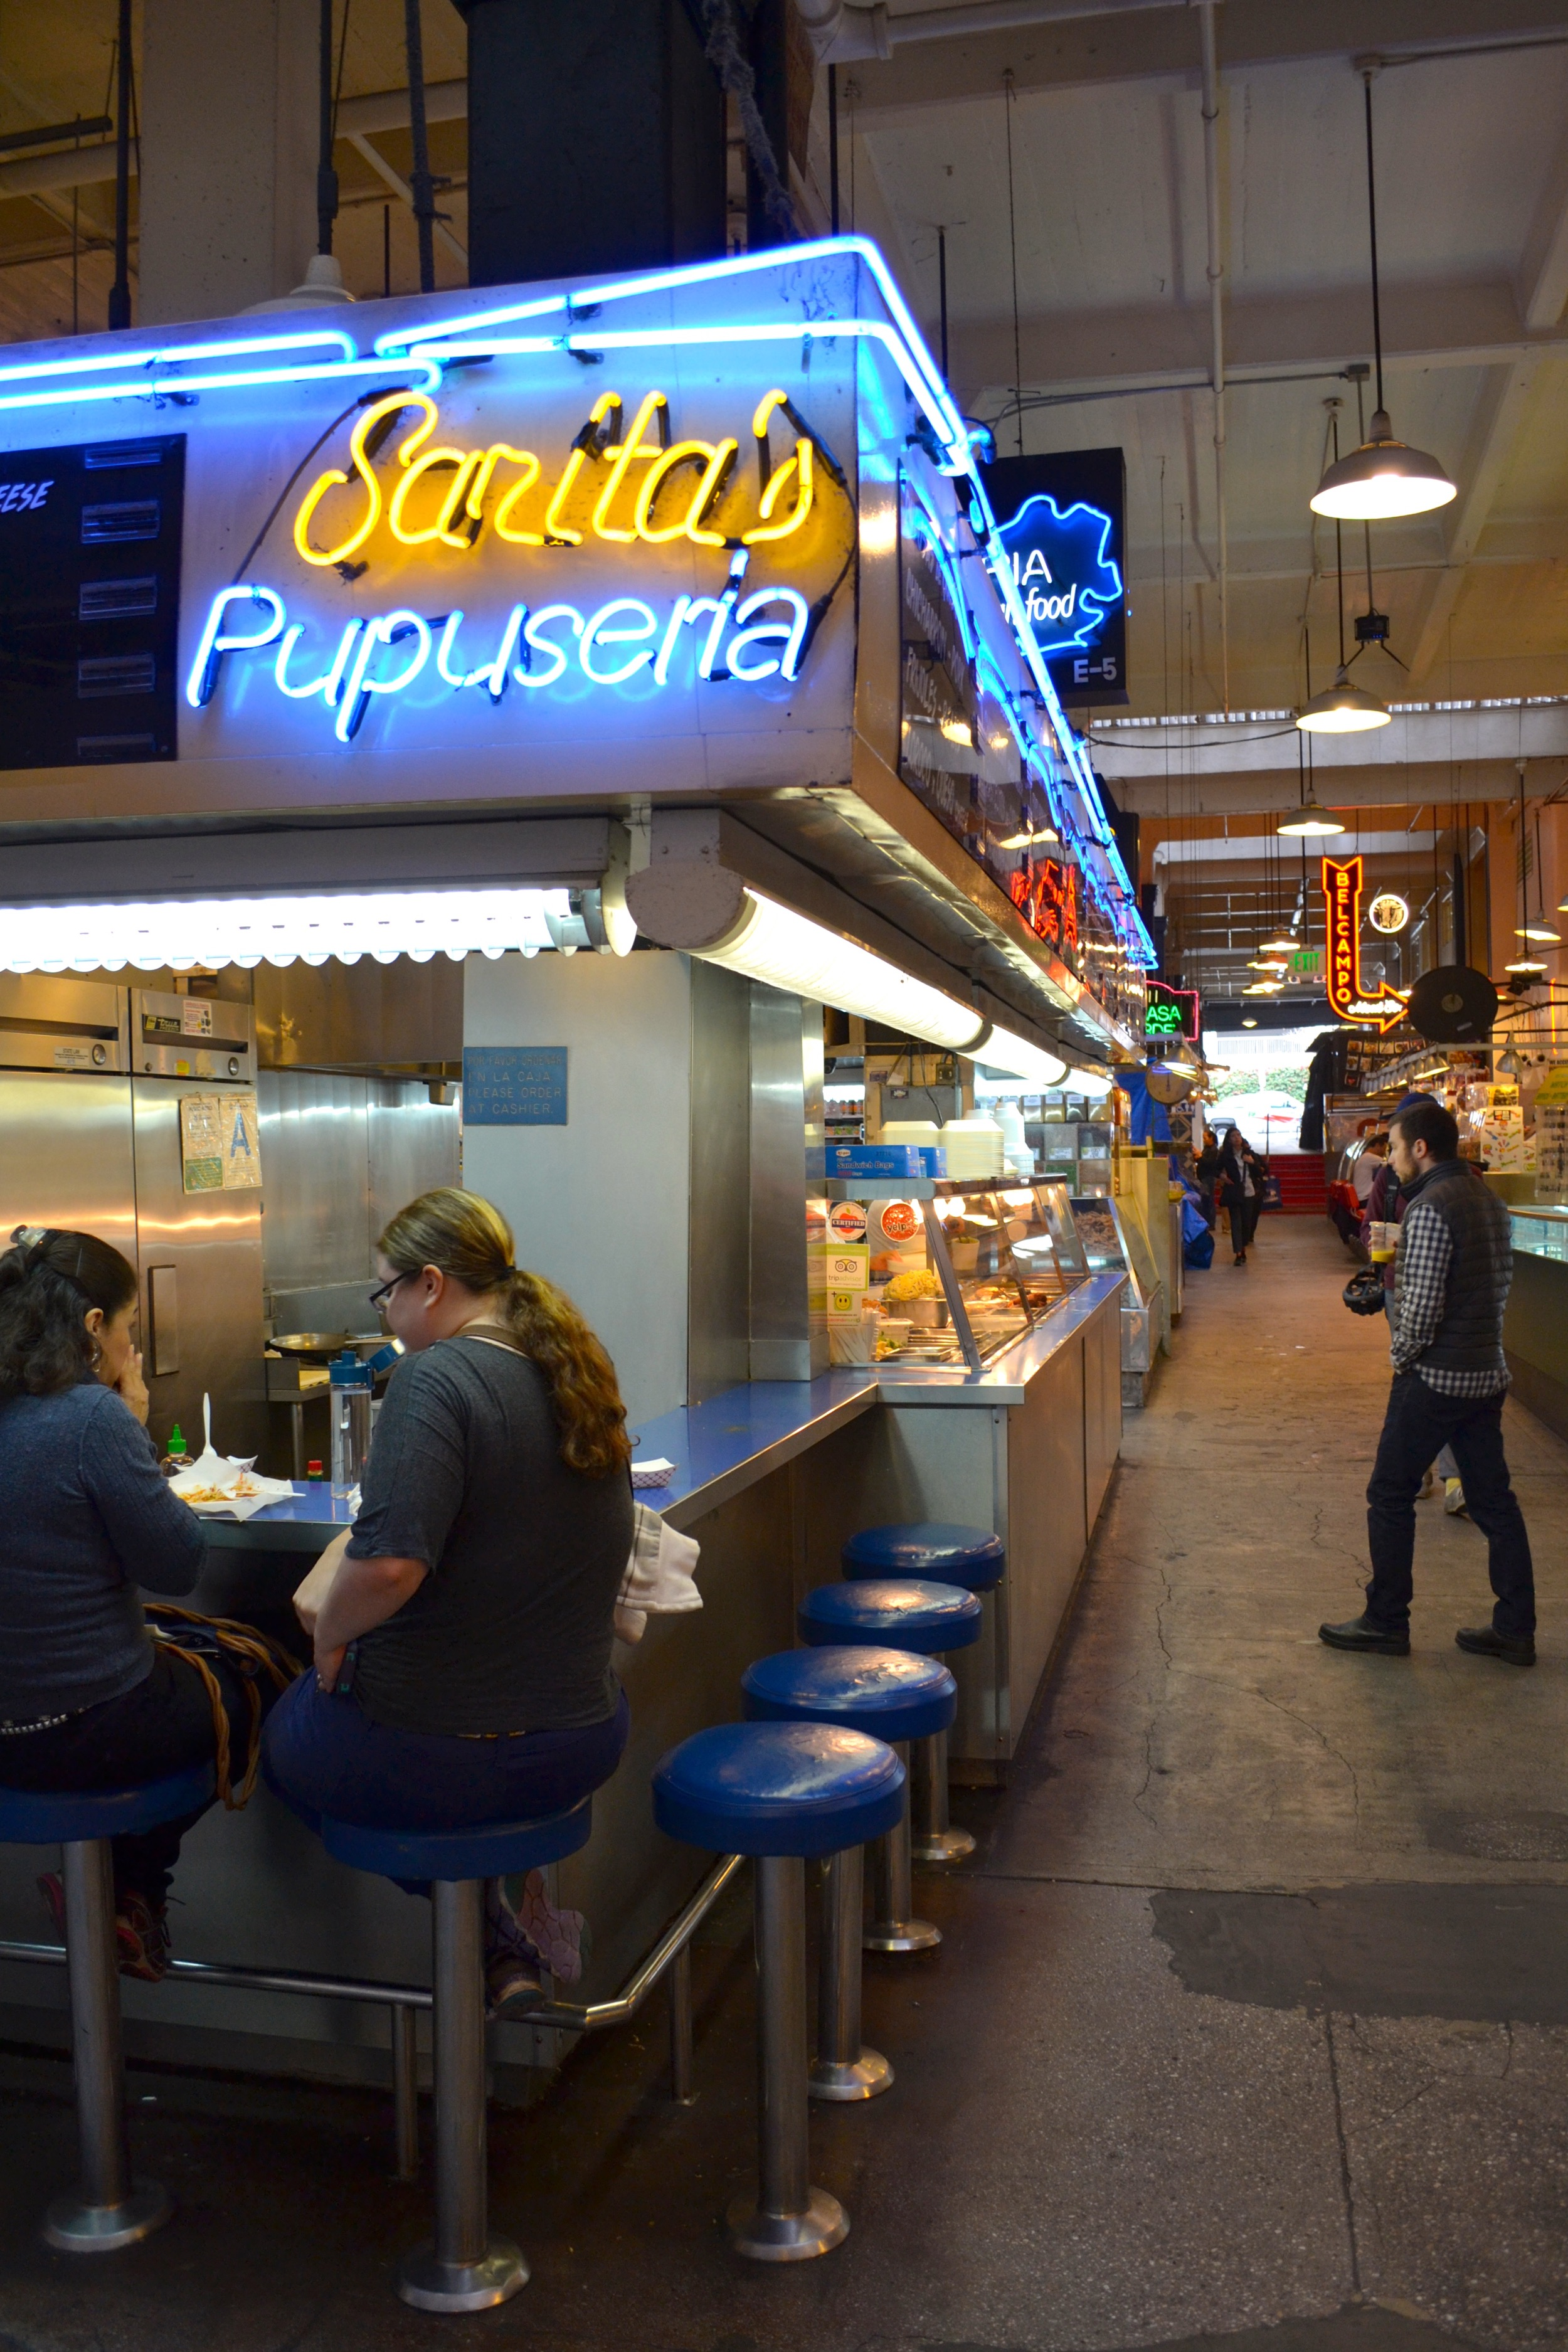 A visit to Grand Central Station is a must. I loved the neon sign and the mix of authentic food with trendy spots.